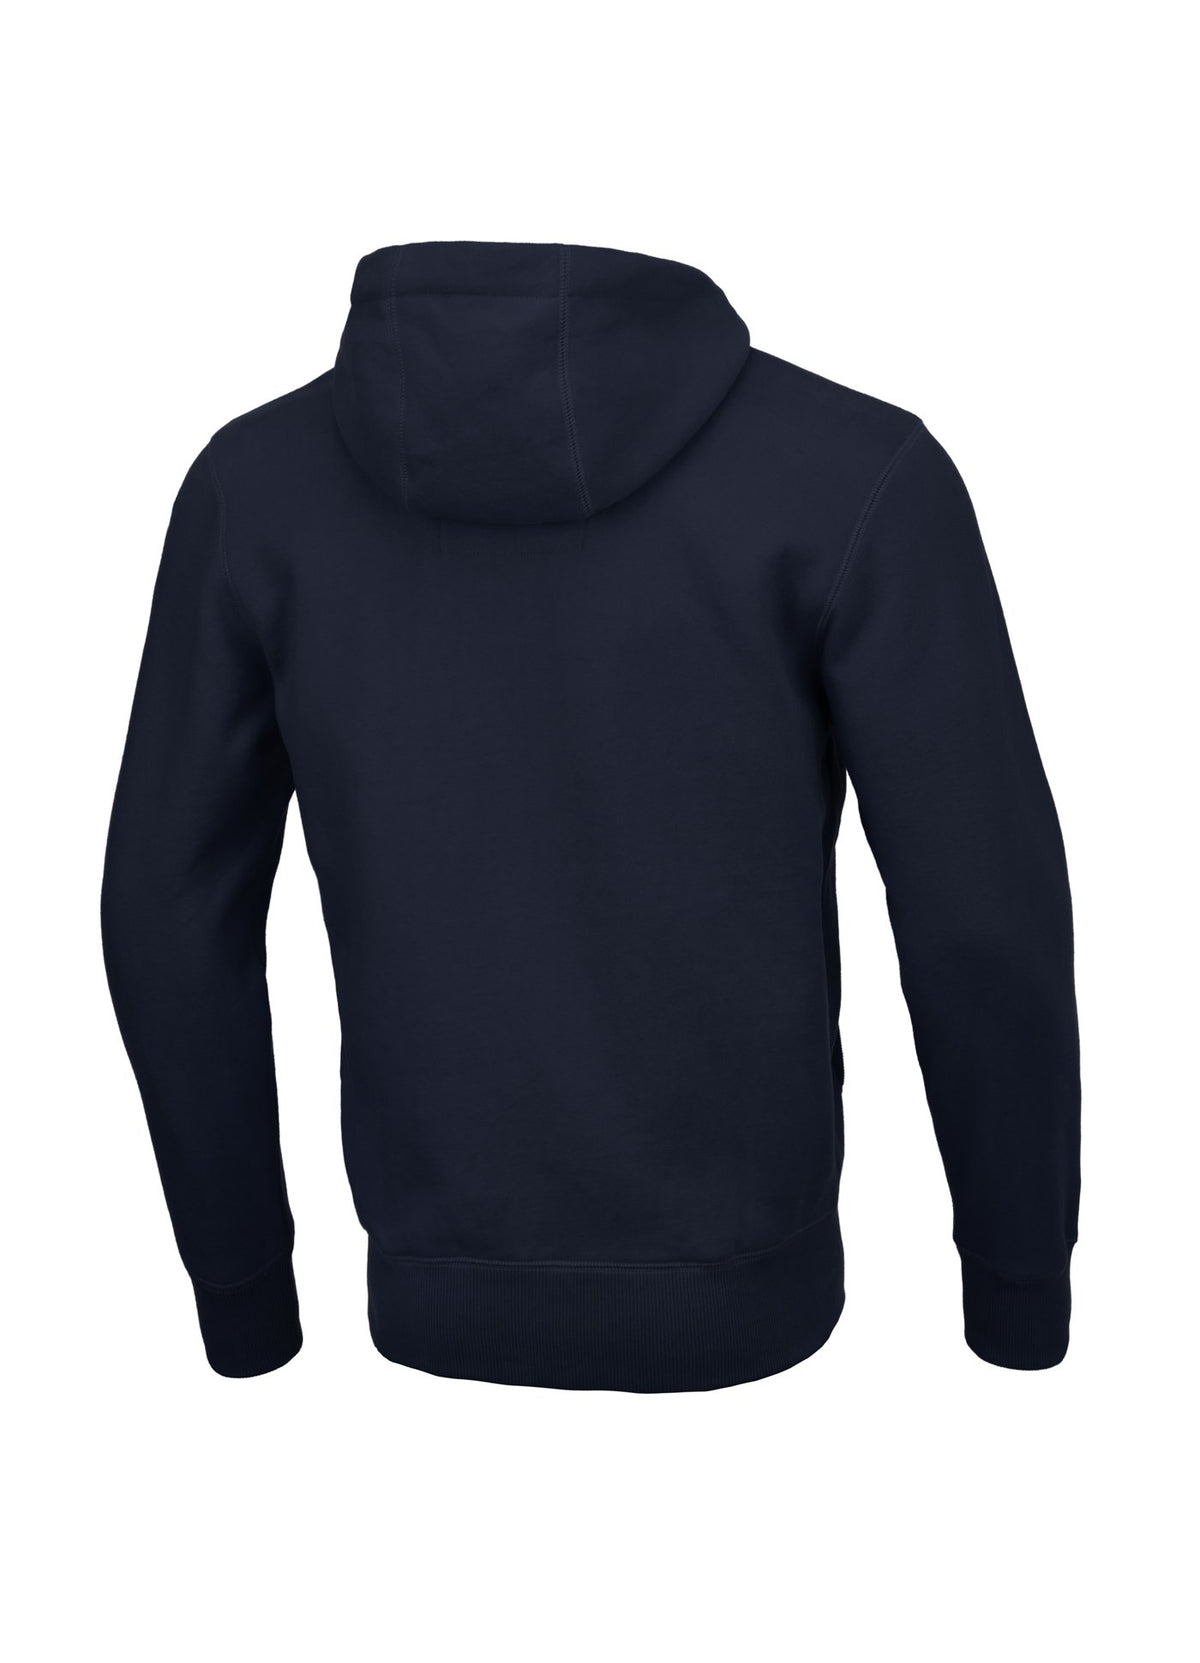 Hooded Zipped Sweatshirt SMALL LOGO Dark Navy